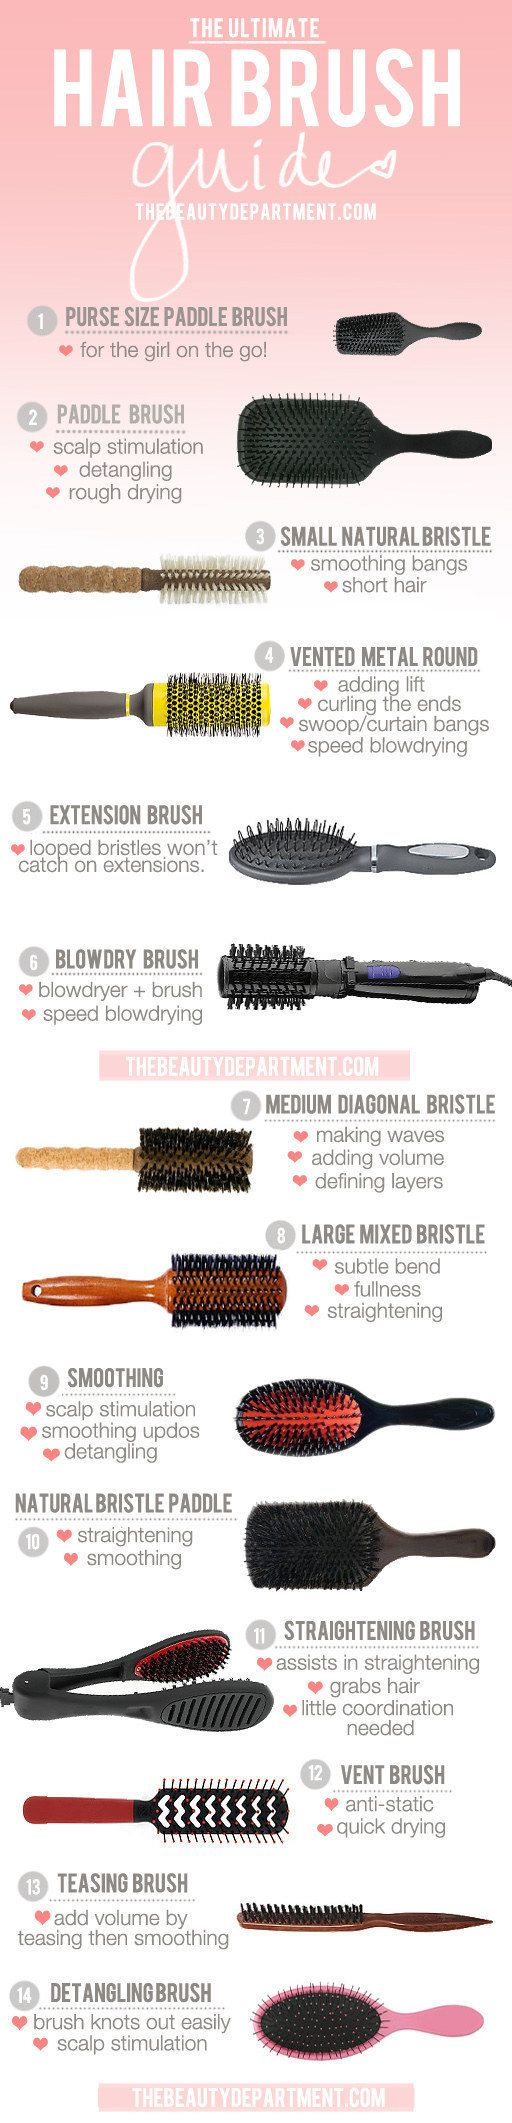 Make sure you have the best brush for your hair. | 19 Hair Tips & Tricks That Will Make Things So Much Easier